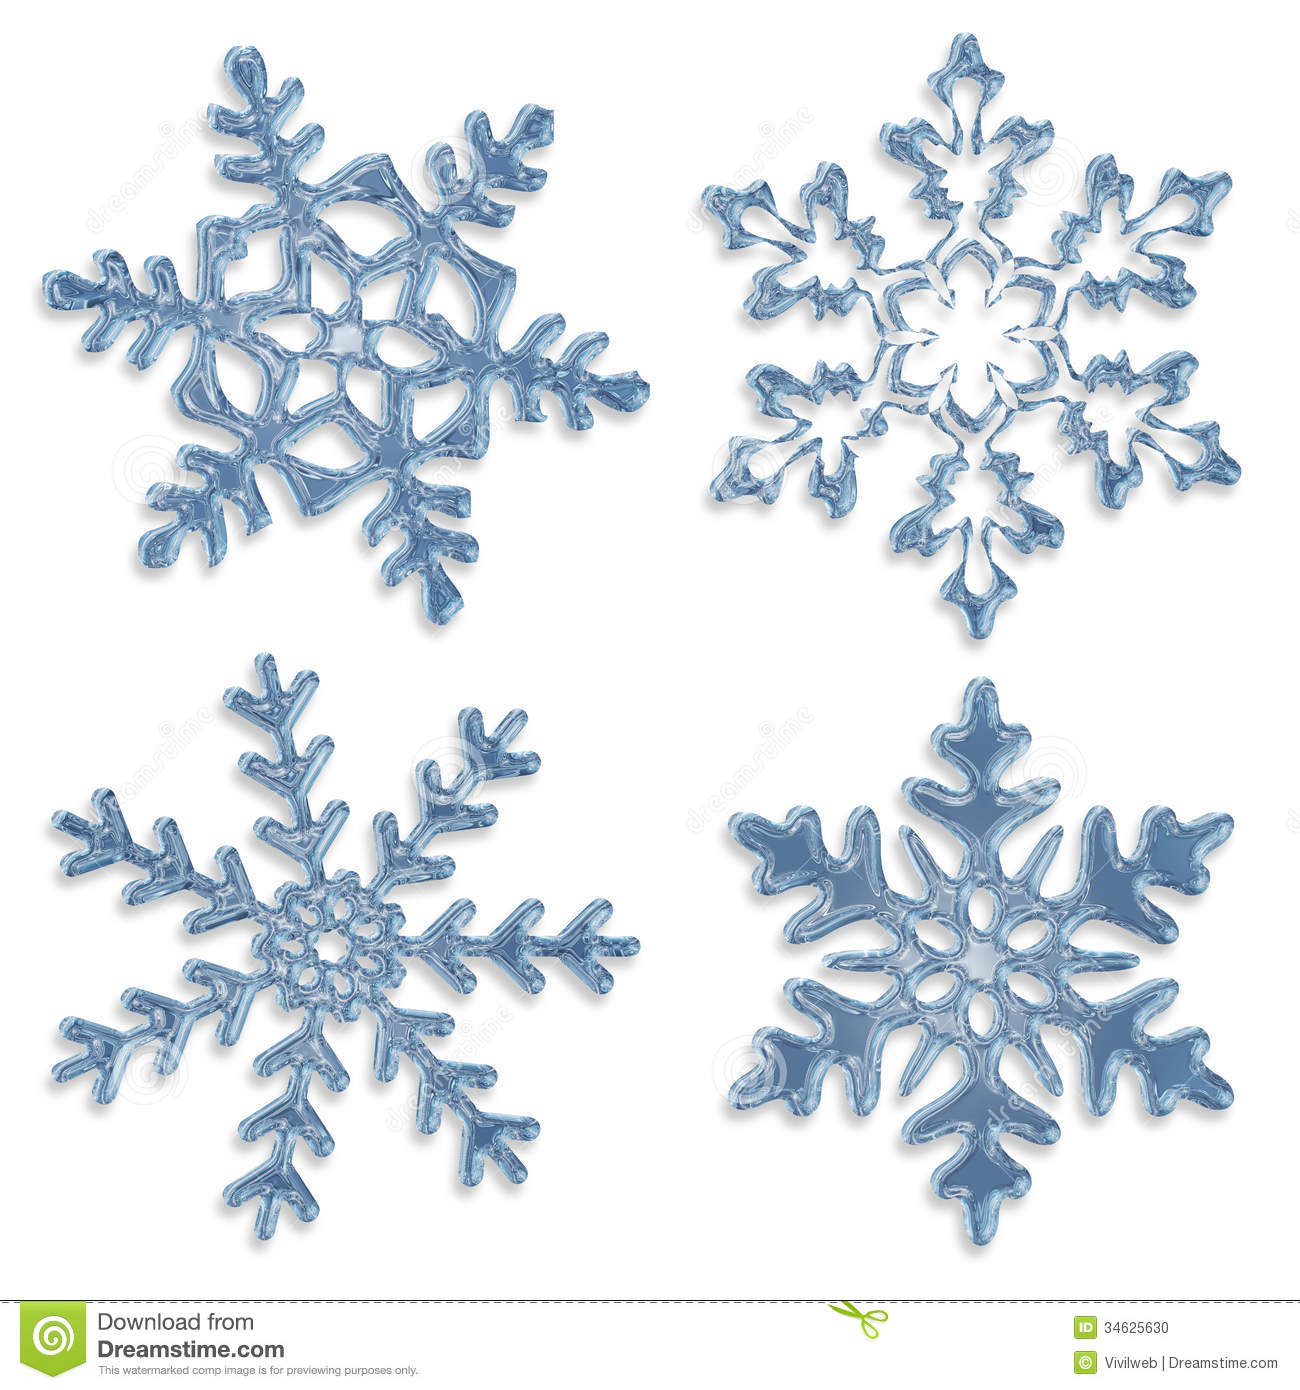 Set of blue icy snowflakes on white background White Snowflake Transparent Background